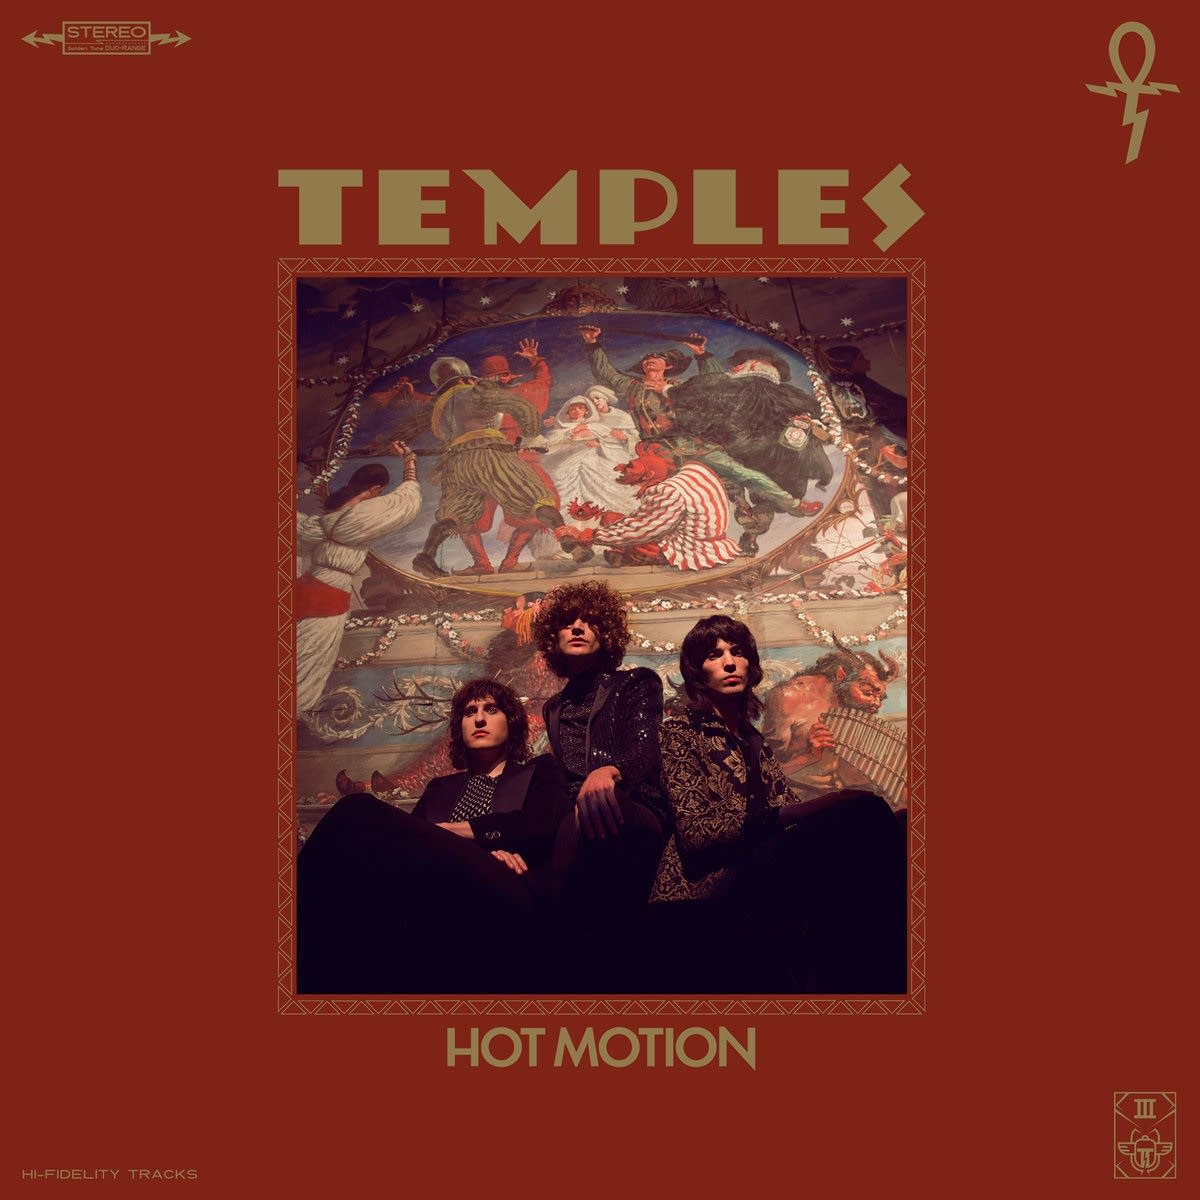 Temples, 'Hot Motion'